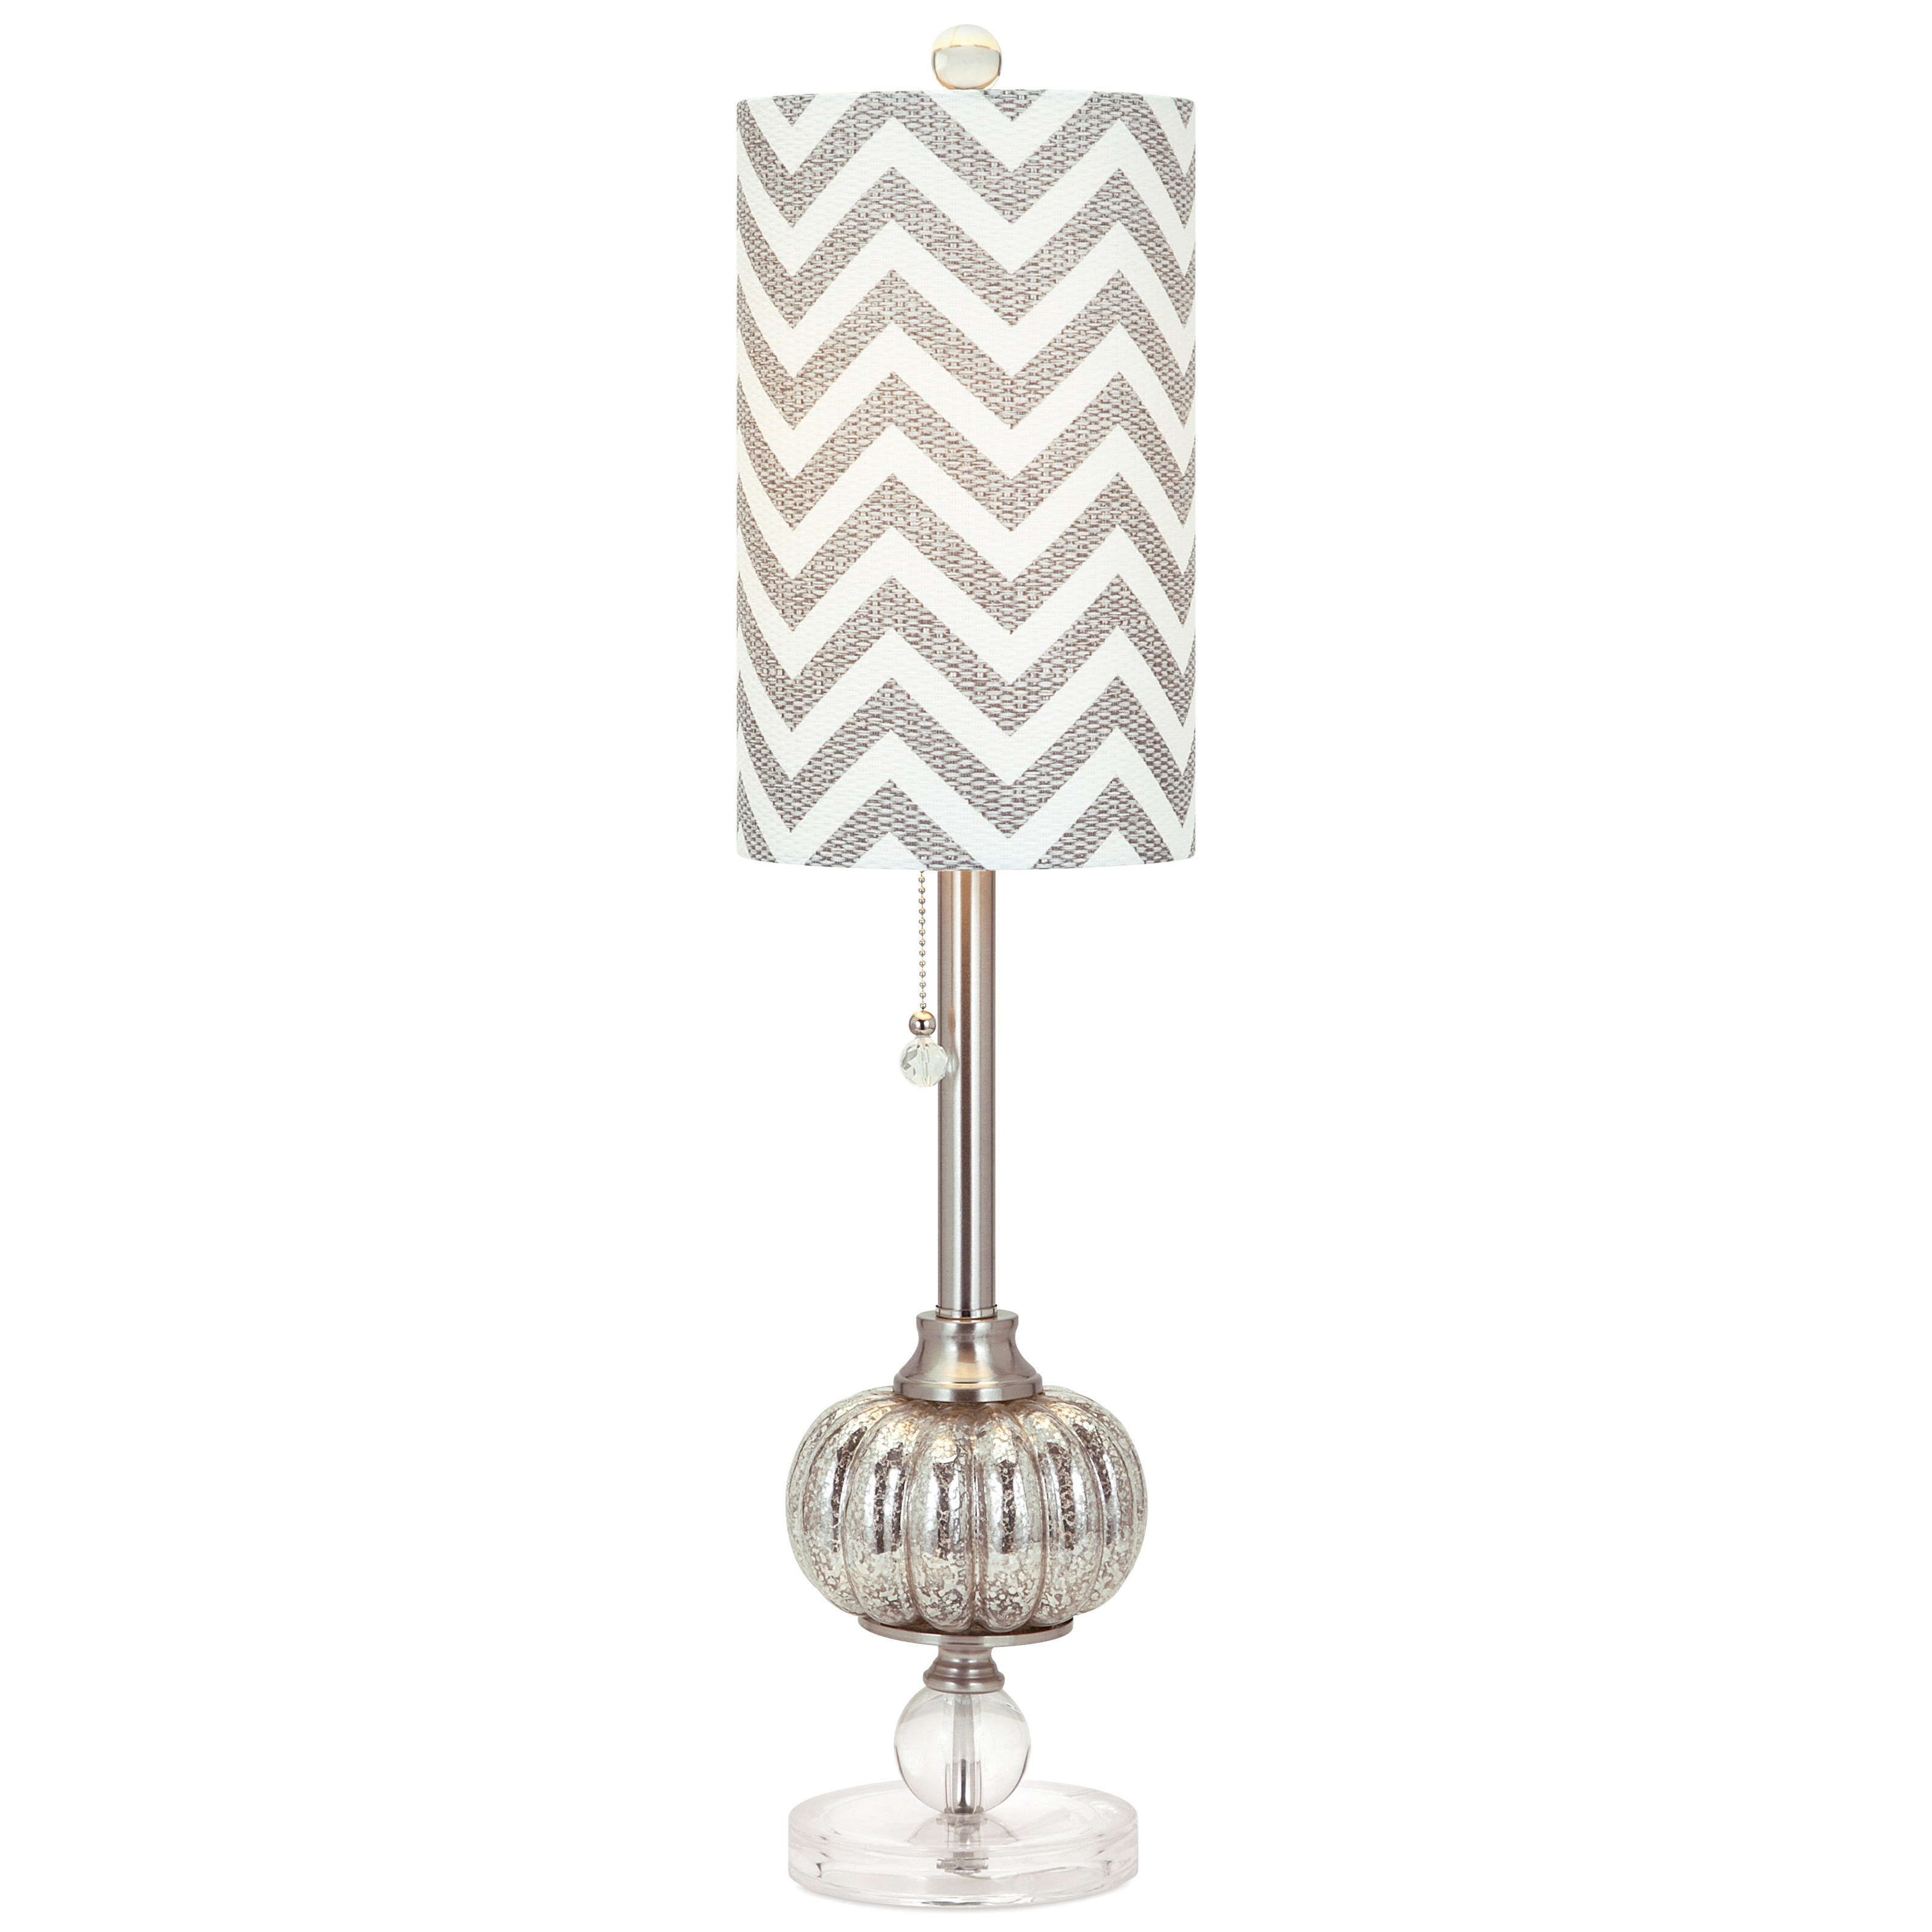 Becky Fletcher Robyn Table Lamp by IMAX Worldwide Home at Alison Craig Home Furnishings